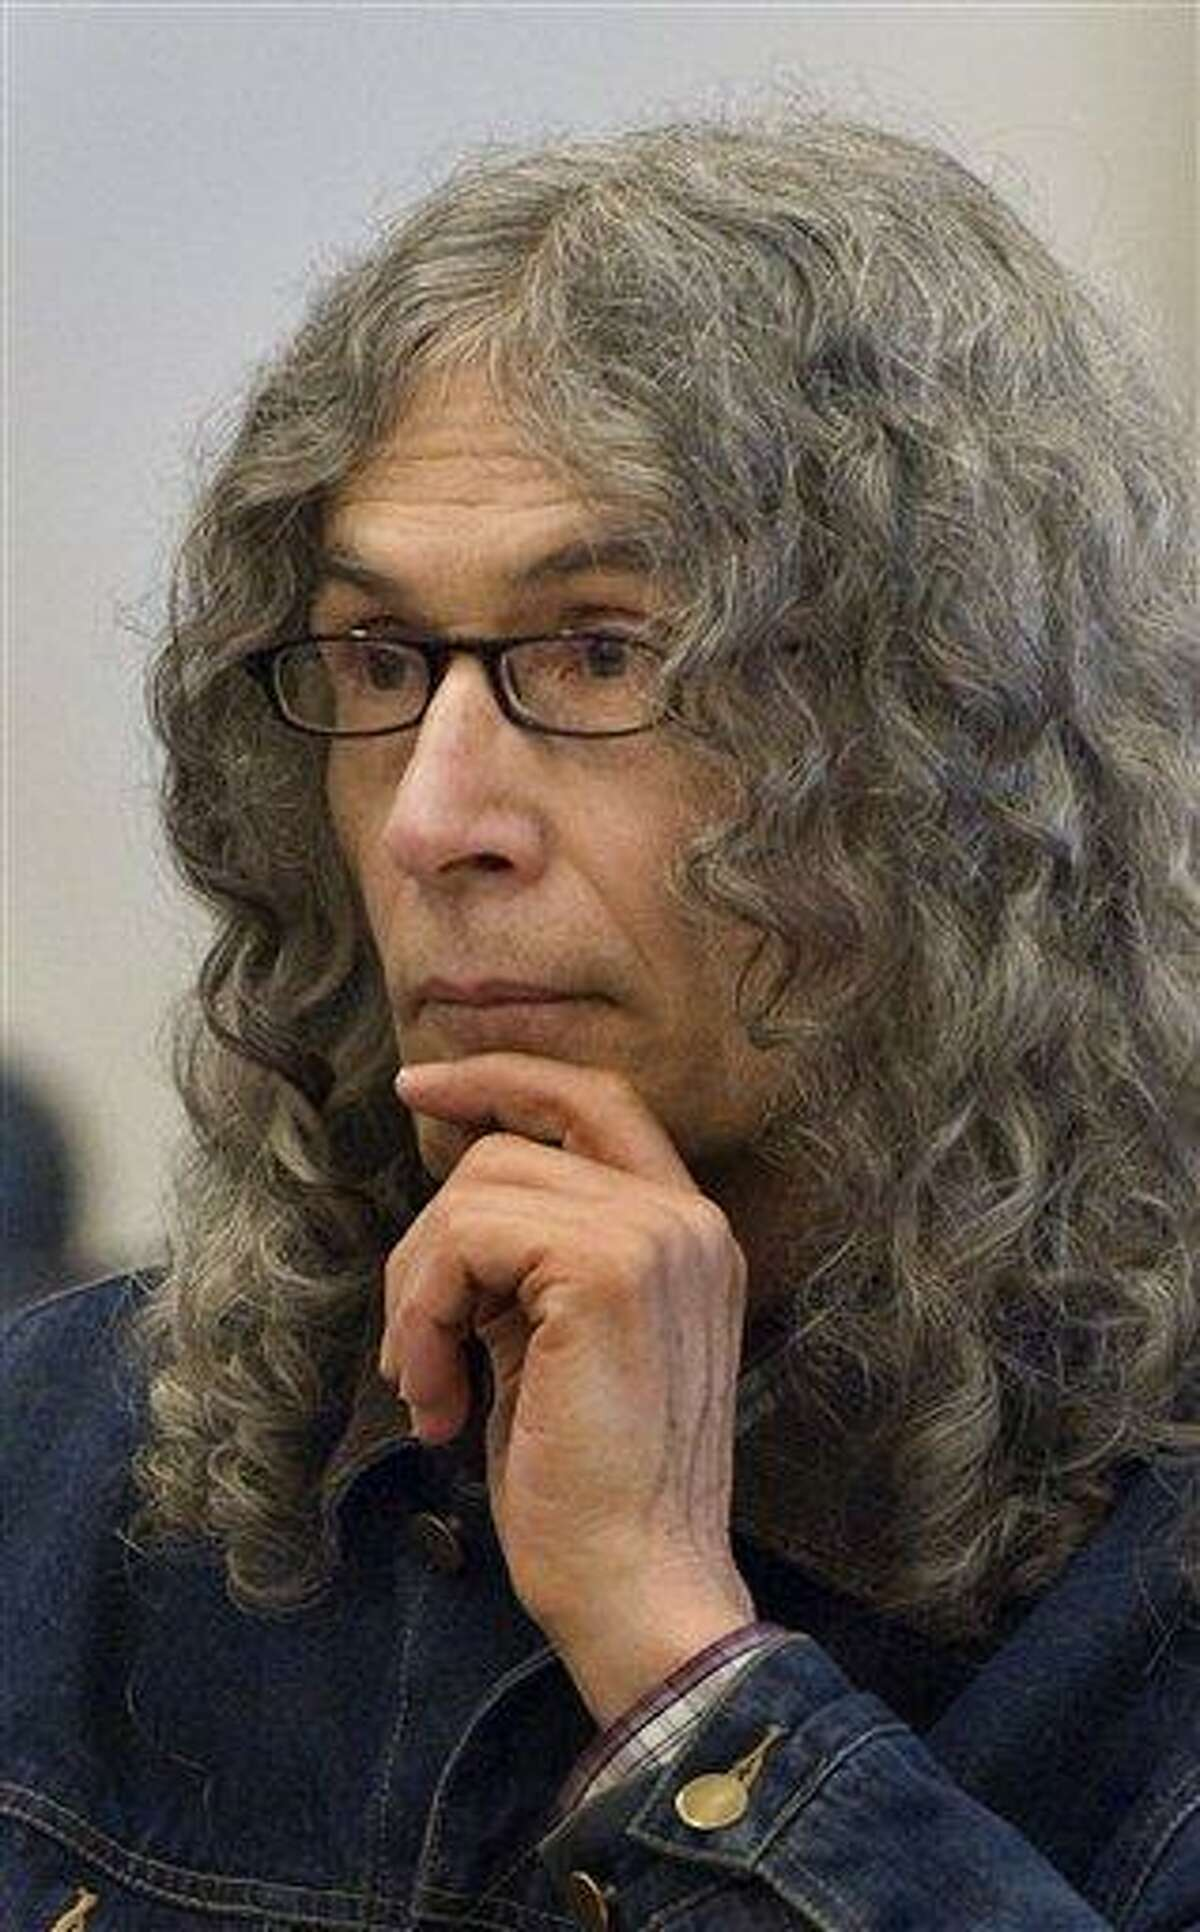 """In this 2010 file photo, convicted serial killer Rodney Alcala listens as victim-impact statements are read in a Santa Ana, Calif. On Wednesday, Alcala was headed to New York to face charges of killing two young women, Cornelia Crilley and Ellen Hover, in the 1970s, the Manhattan district attorney's office said. Alcala, a photographer and former """"Dating Game"""" contestant, has been on death row in California for the 1970s stranglings of four women and a 12-year-old girl. Associated Press"""